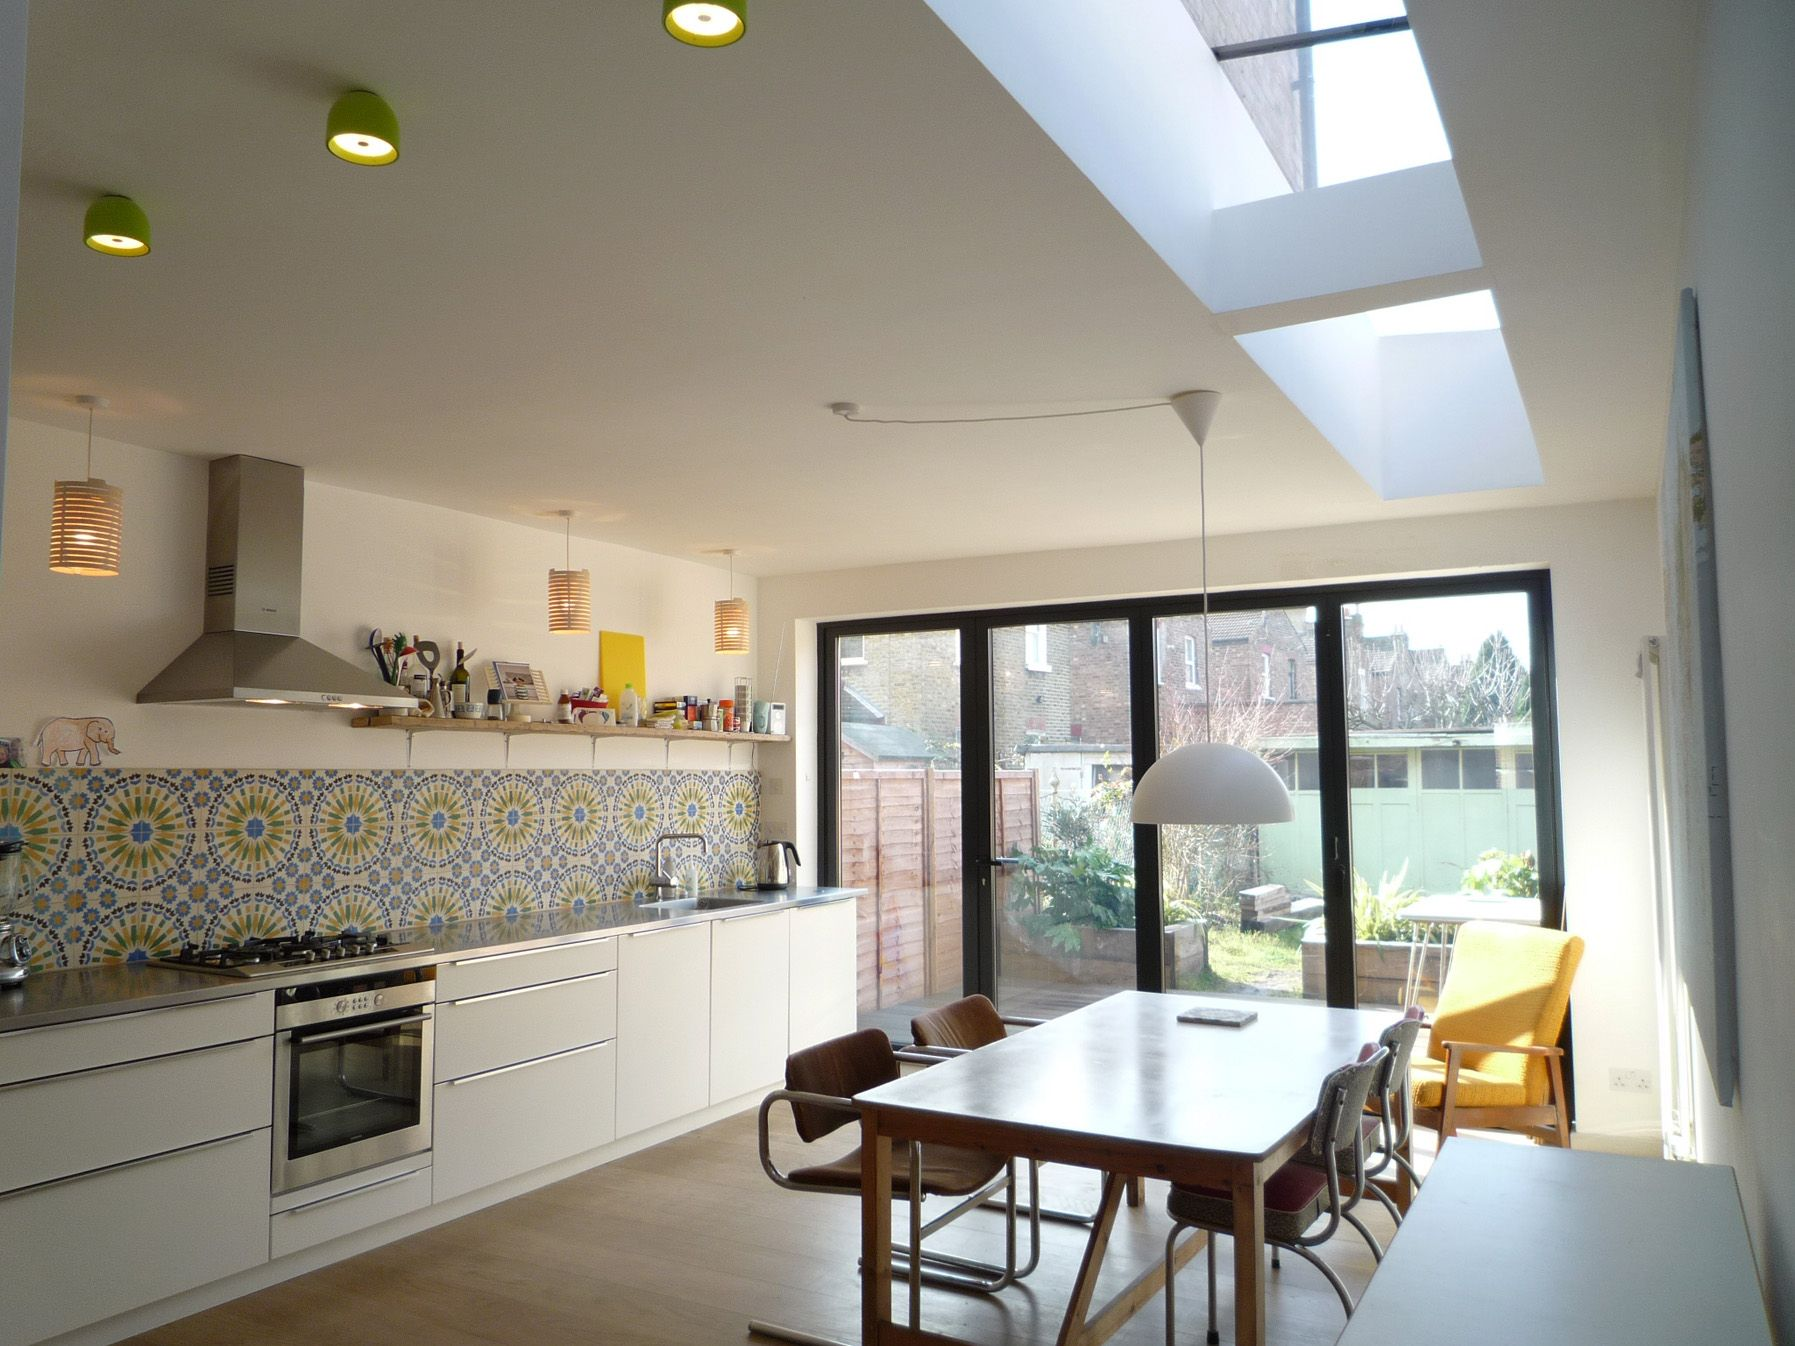 Terraced house kitchen extension google search for Kitchen ideas terraced house